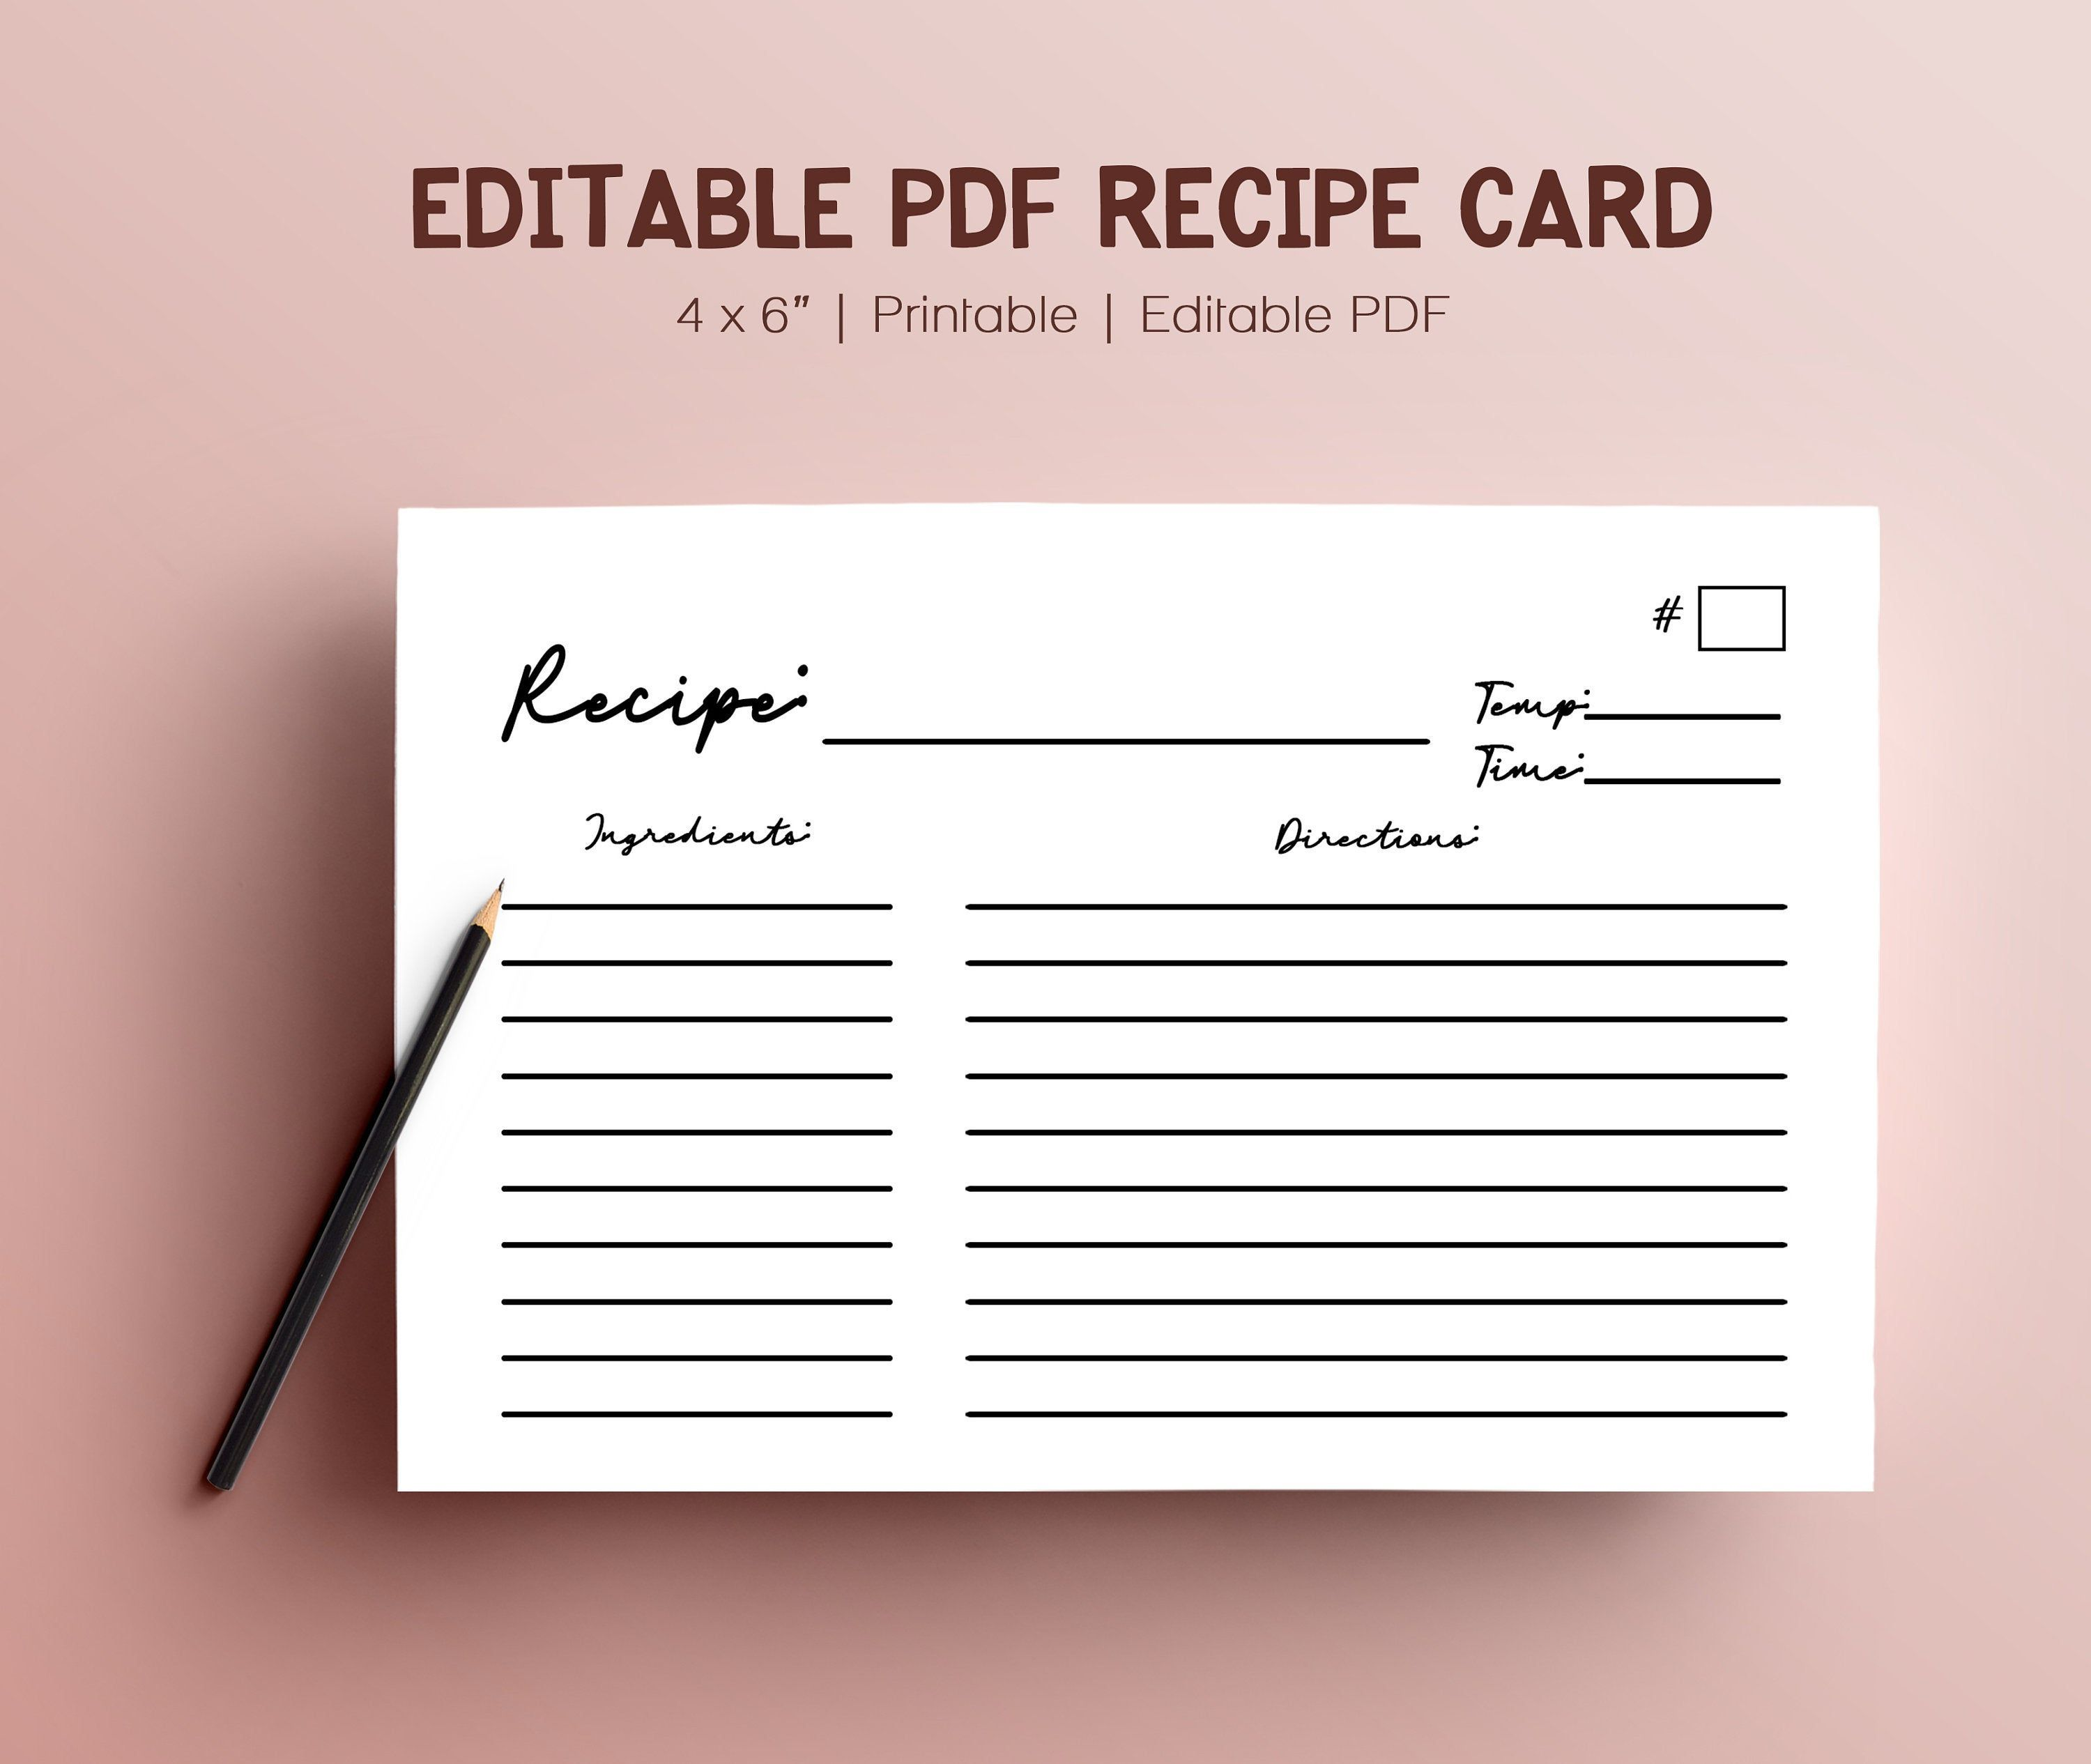 003 Stupendou Editable Recipe Card Template Highest Quality  Free For Microsoft Word 4x6 PageFull